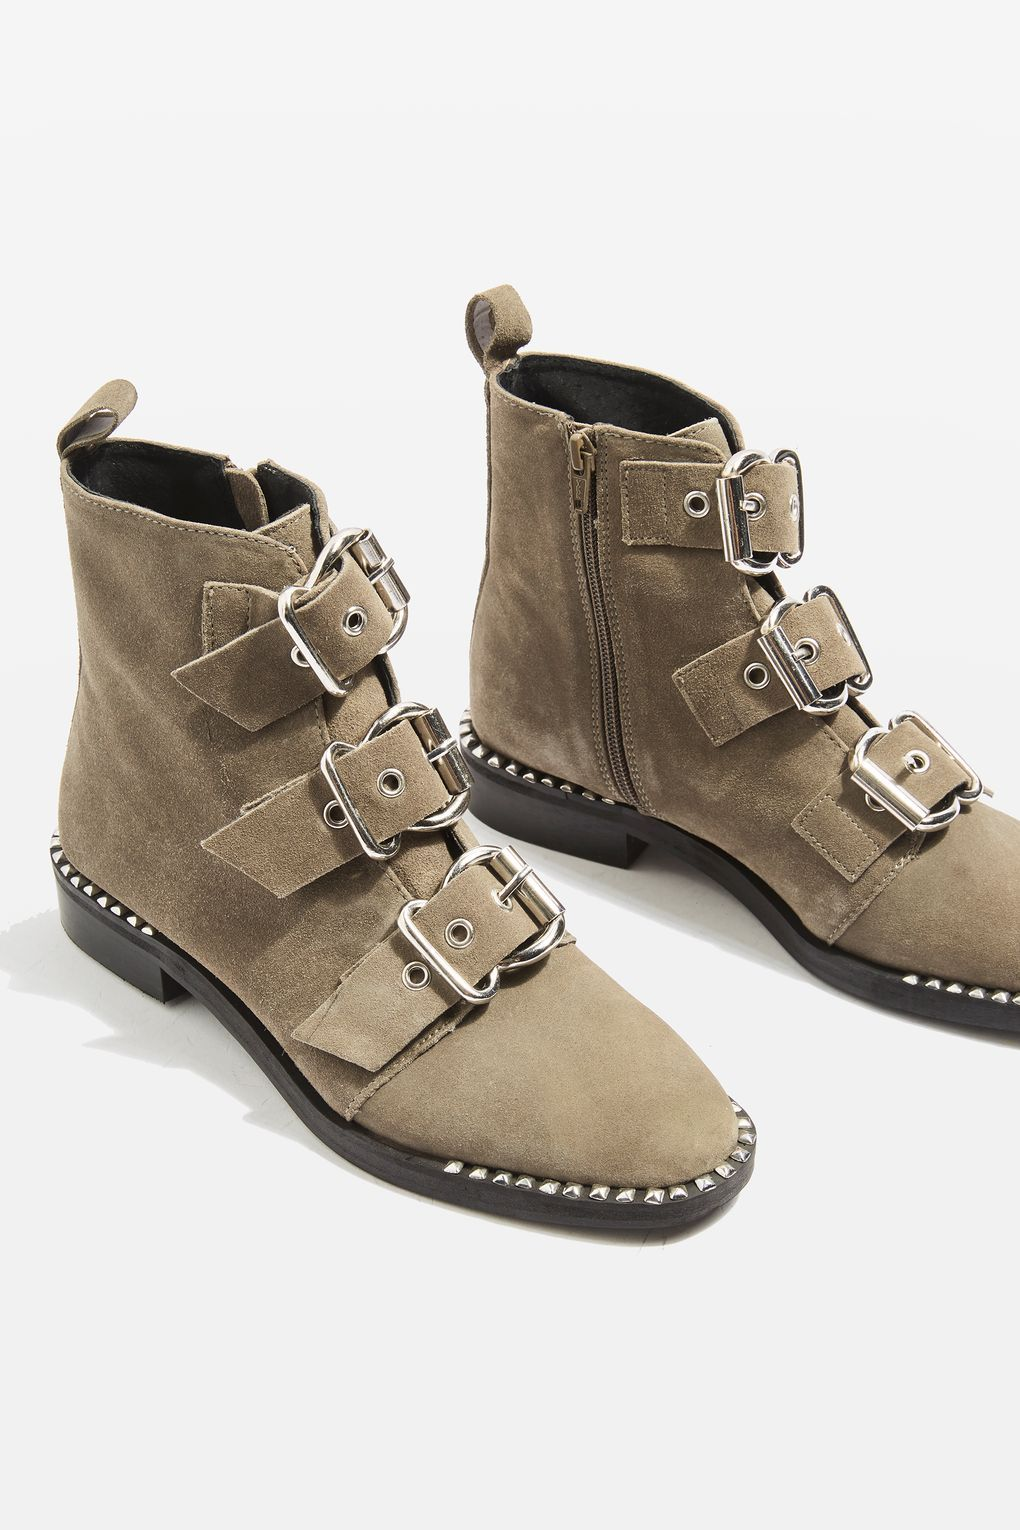 ba5b83338946 ALFIE Buckle Ankle Boots | Ankle Boots | Buckle boots, Buckle ankle ...